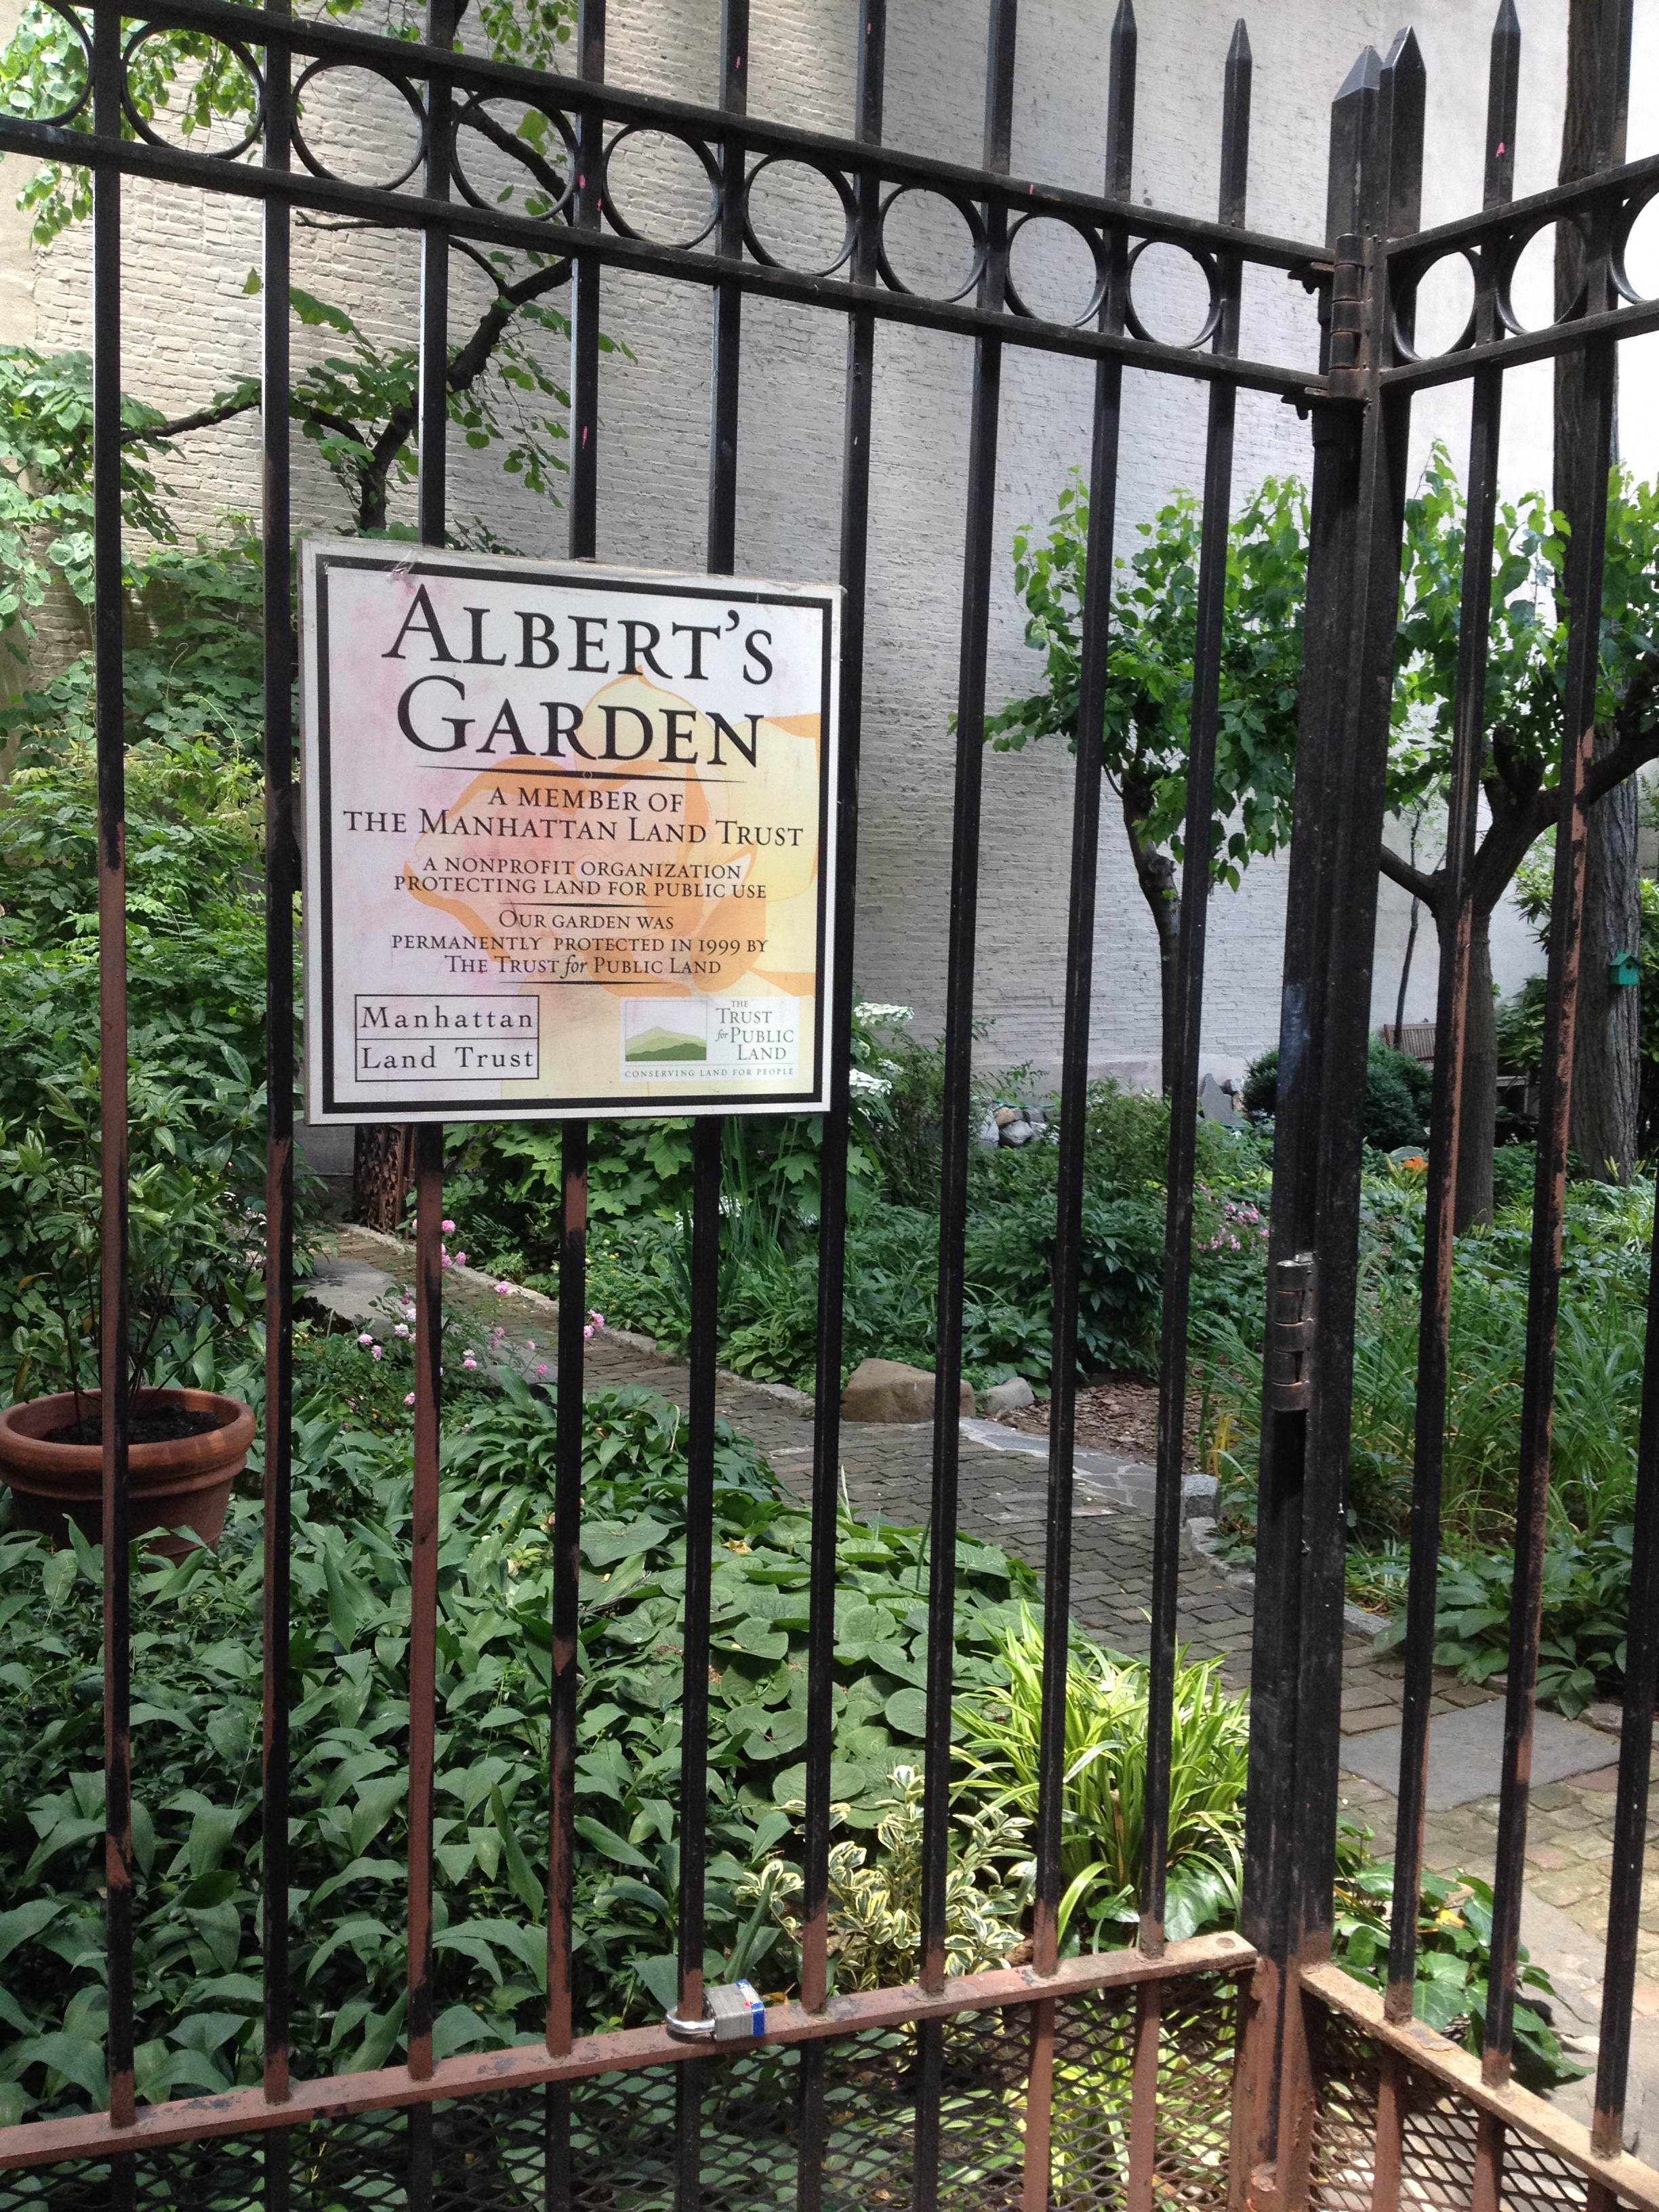 What is now this little garden was the location of  The Ramones  first album cover photo